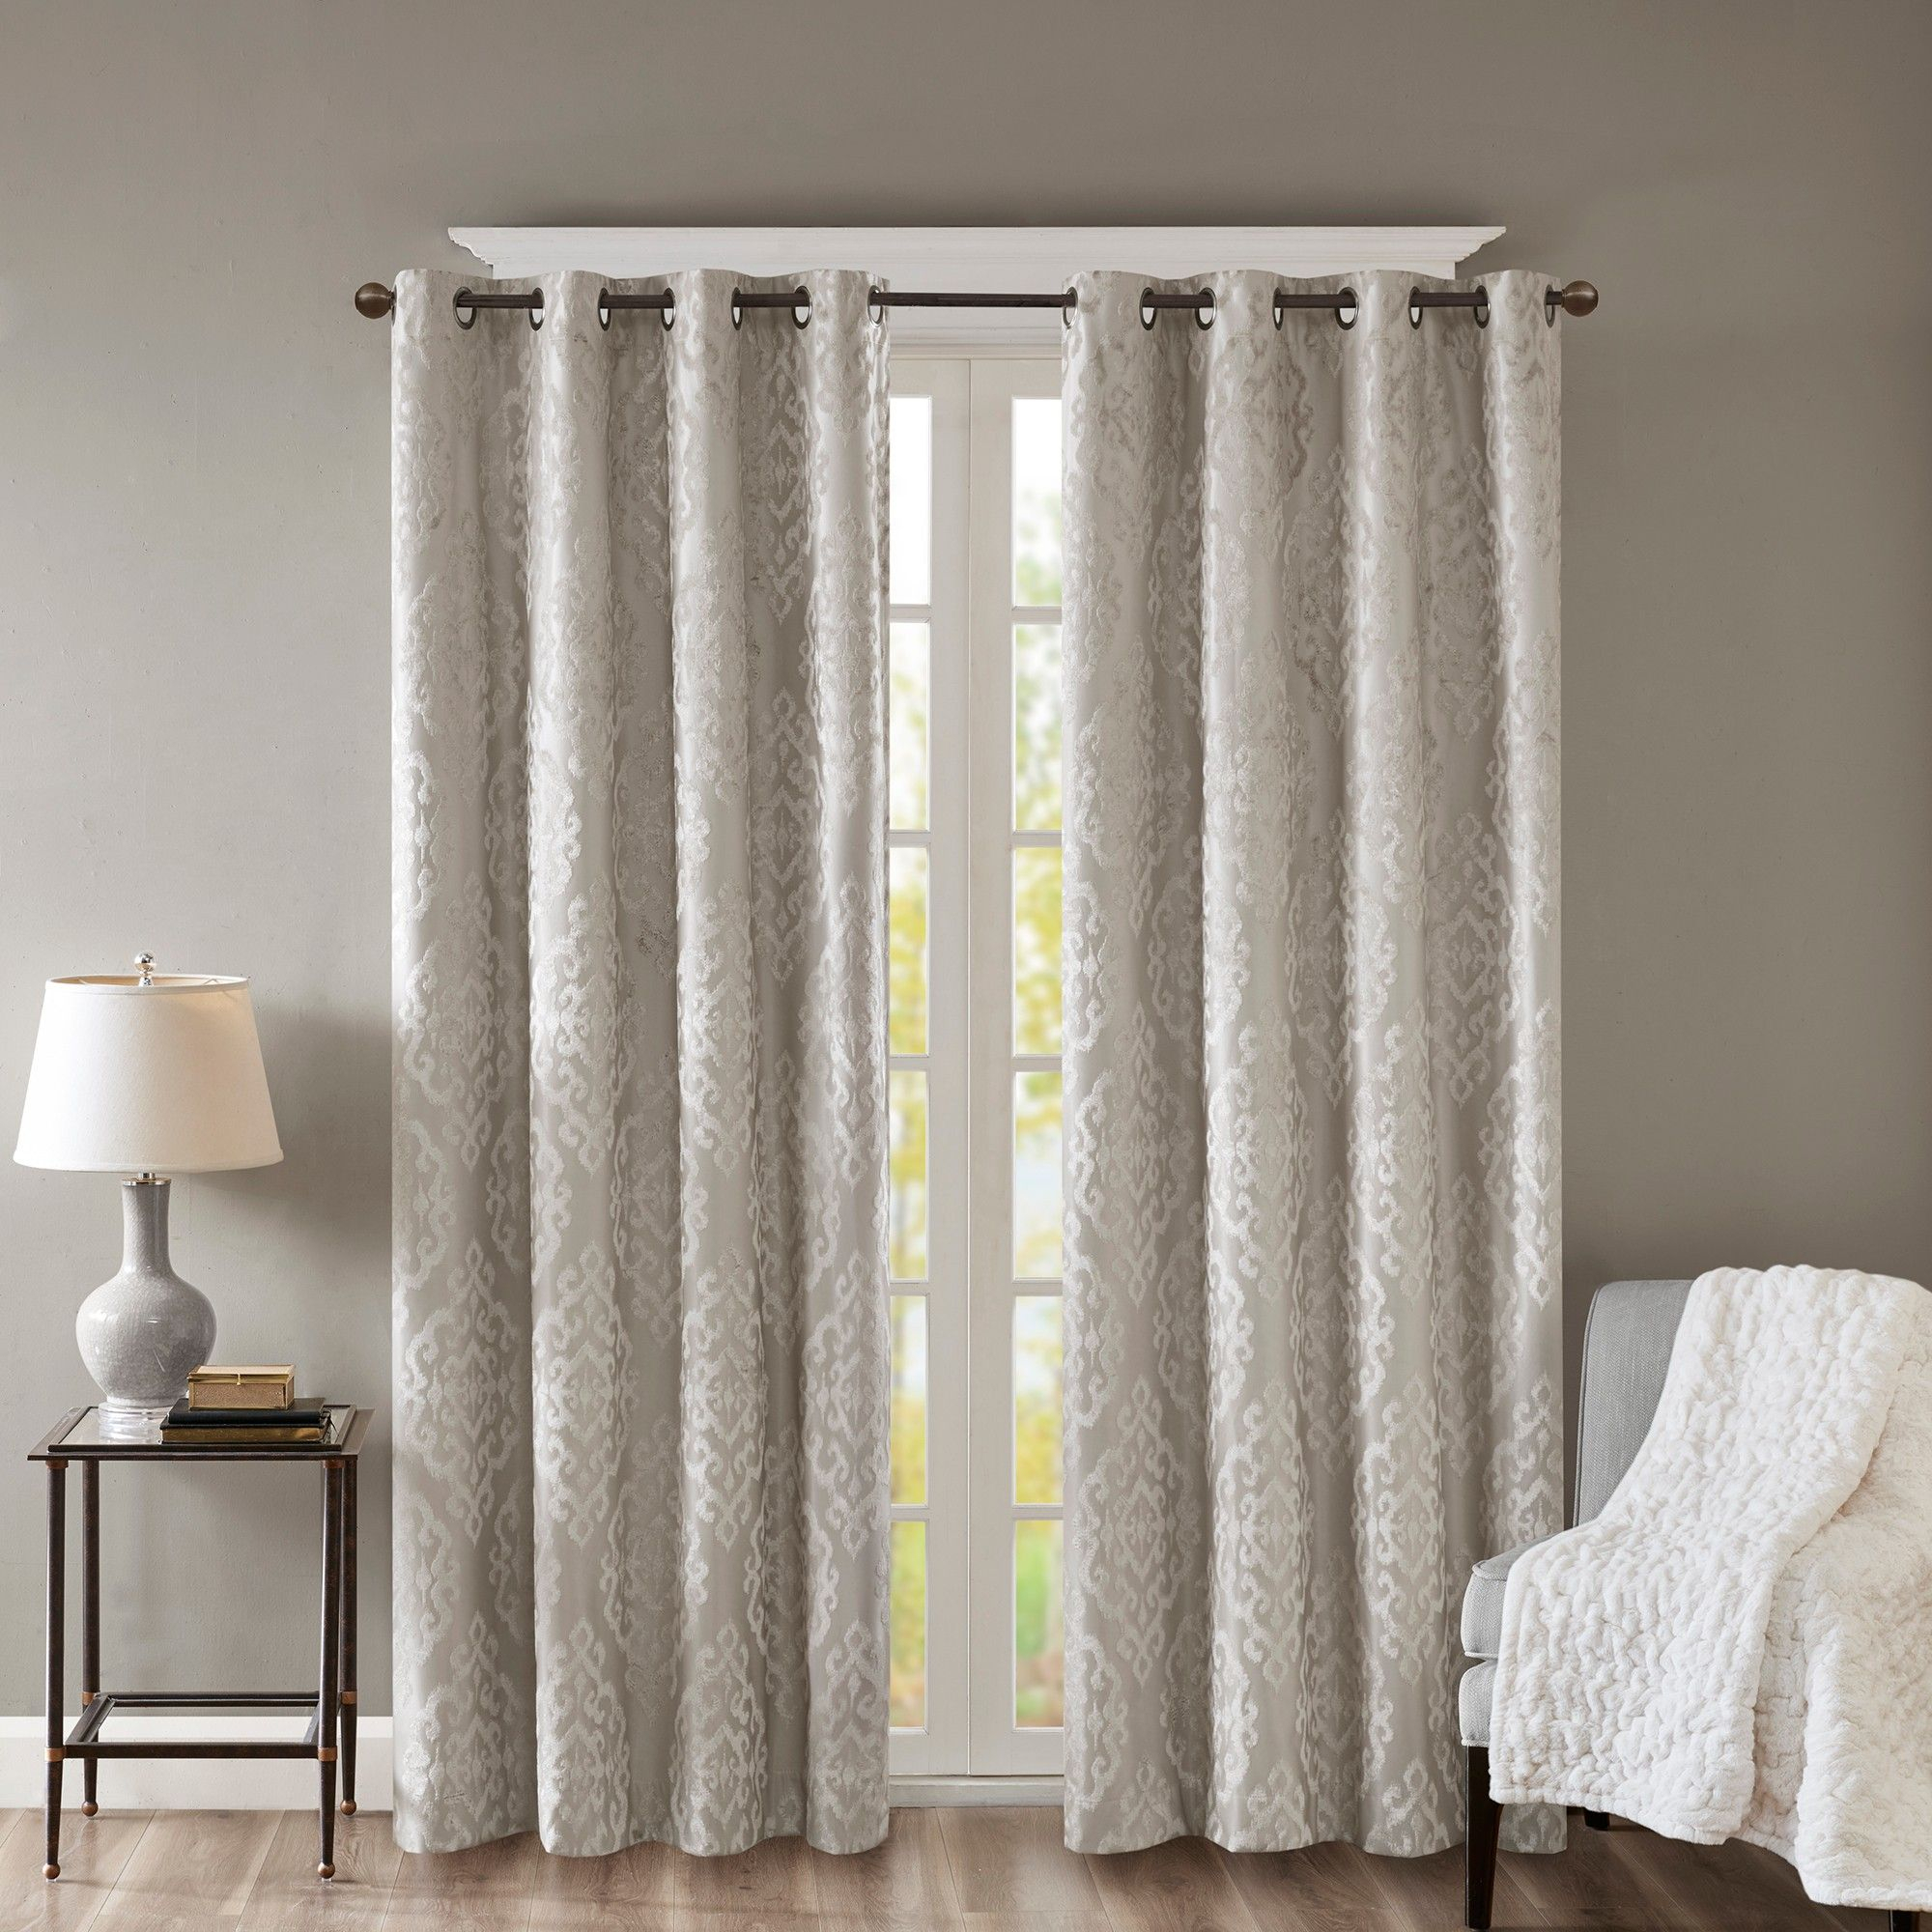 Azalea Knitted Jacquard Total Blackout Panel Gray 50x95 For Sunsmart Dahlia Paisley Printed Total Blackout Single Window Curtain Panels (View 6 of 30)